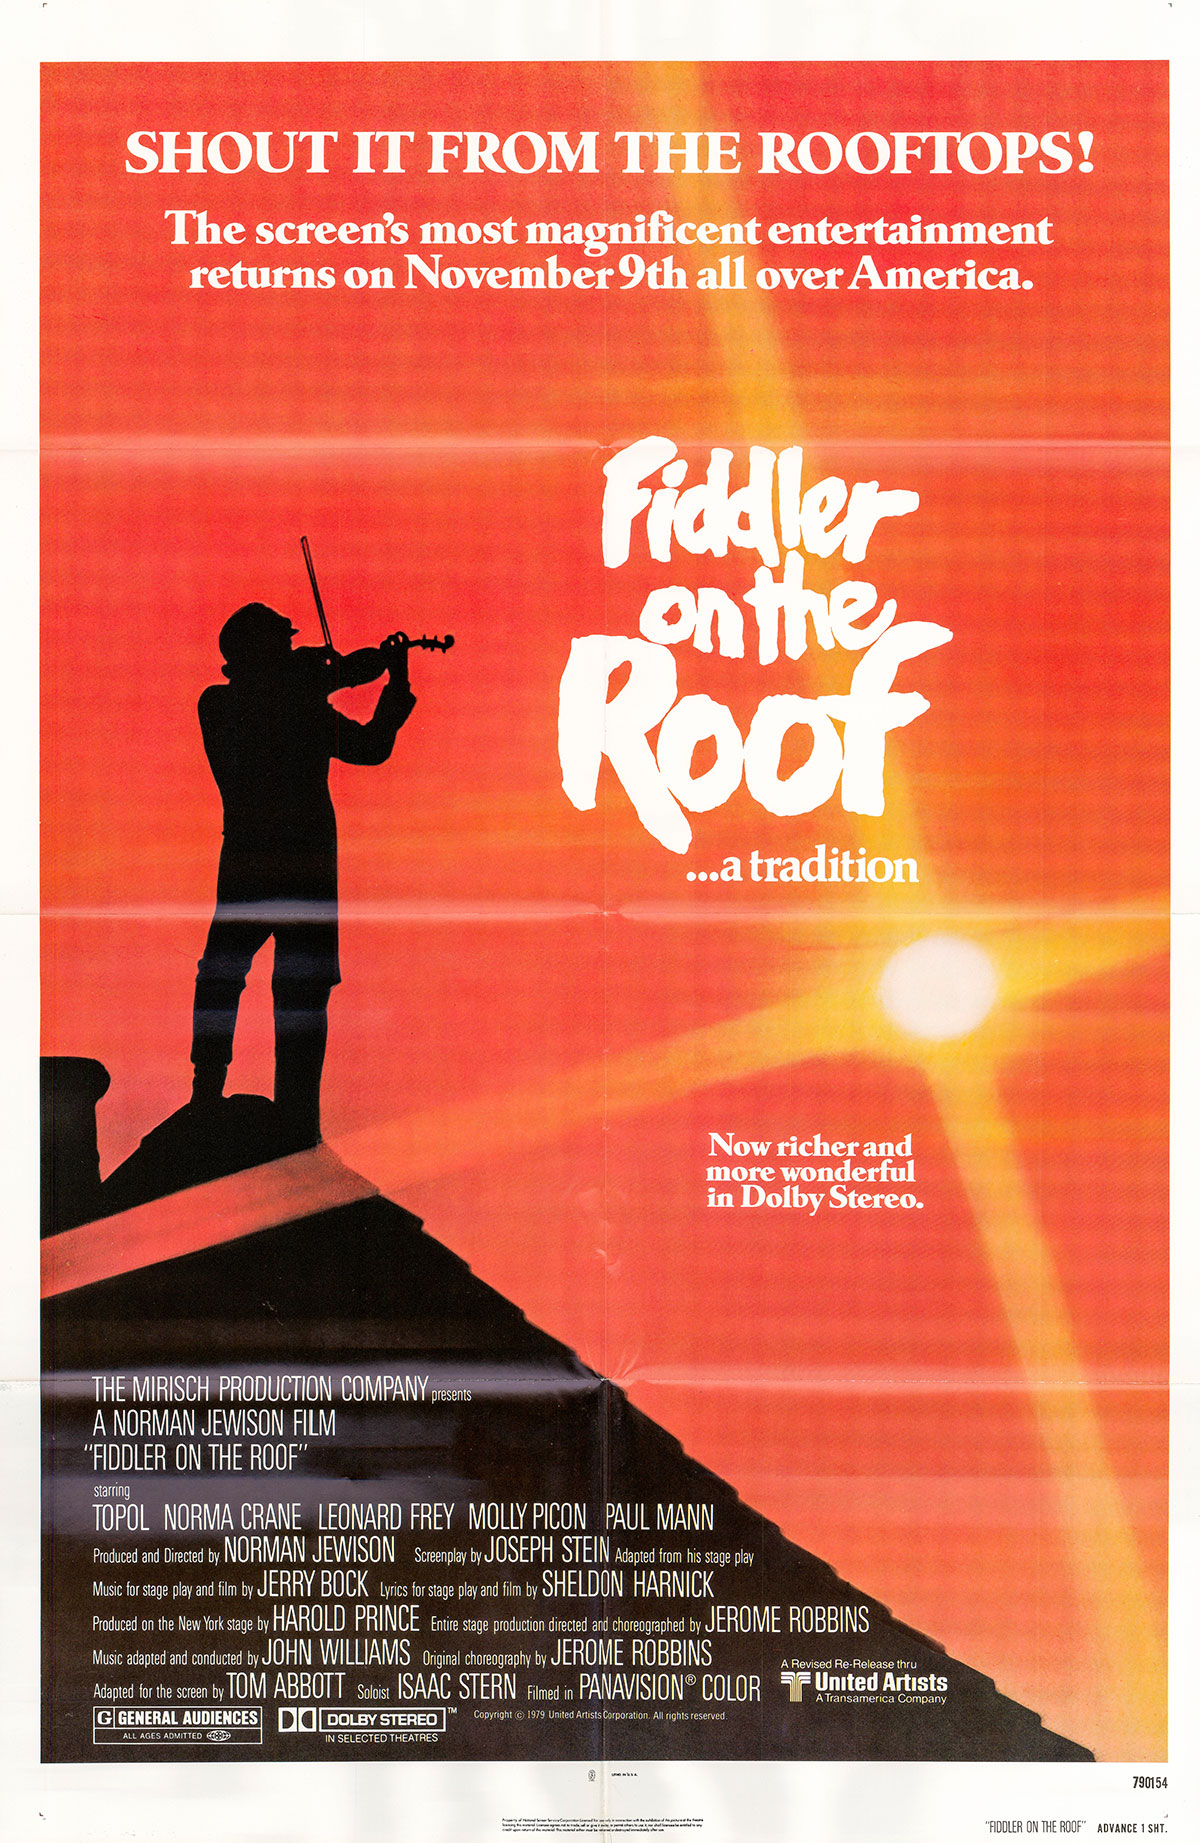 Pictured is a US one-sheet advance poster for a 1979 rerelease of the 1971 Norman Jewison film Fiddler on the Roof starring Topol as Tevye.